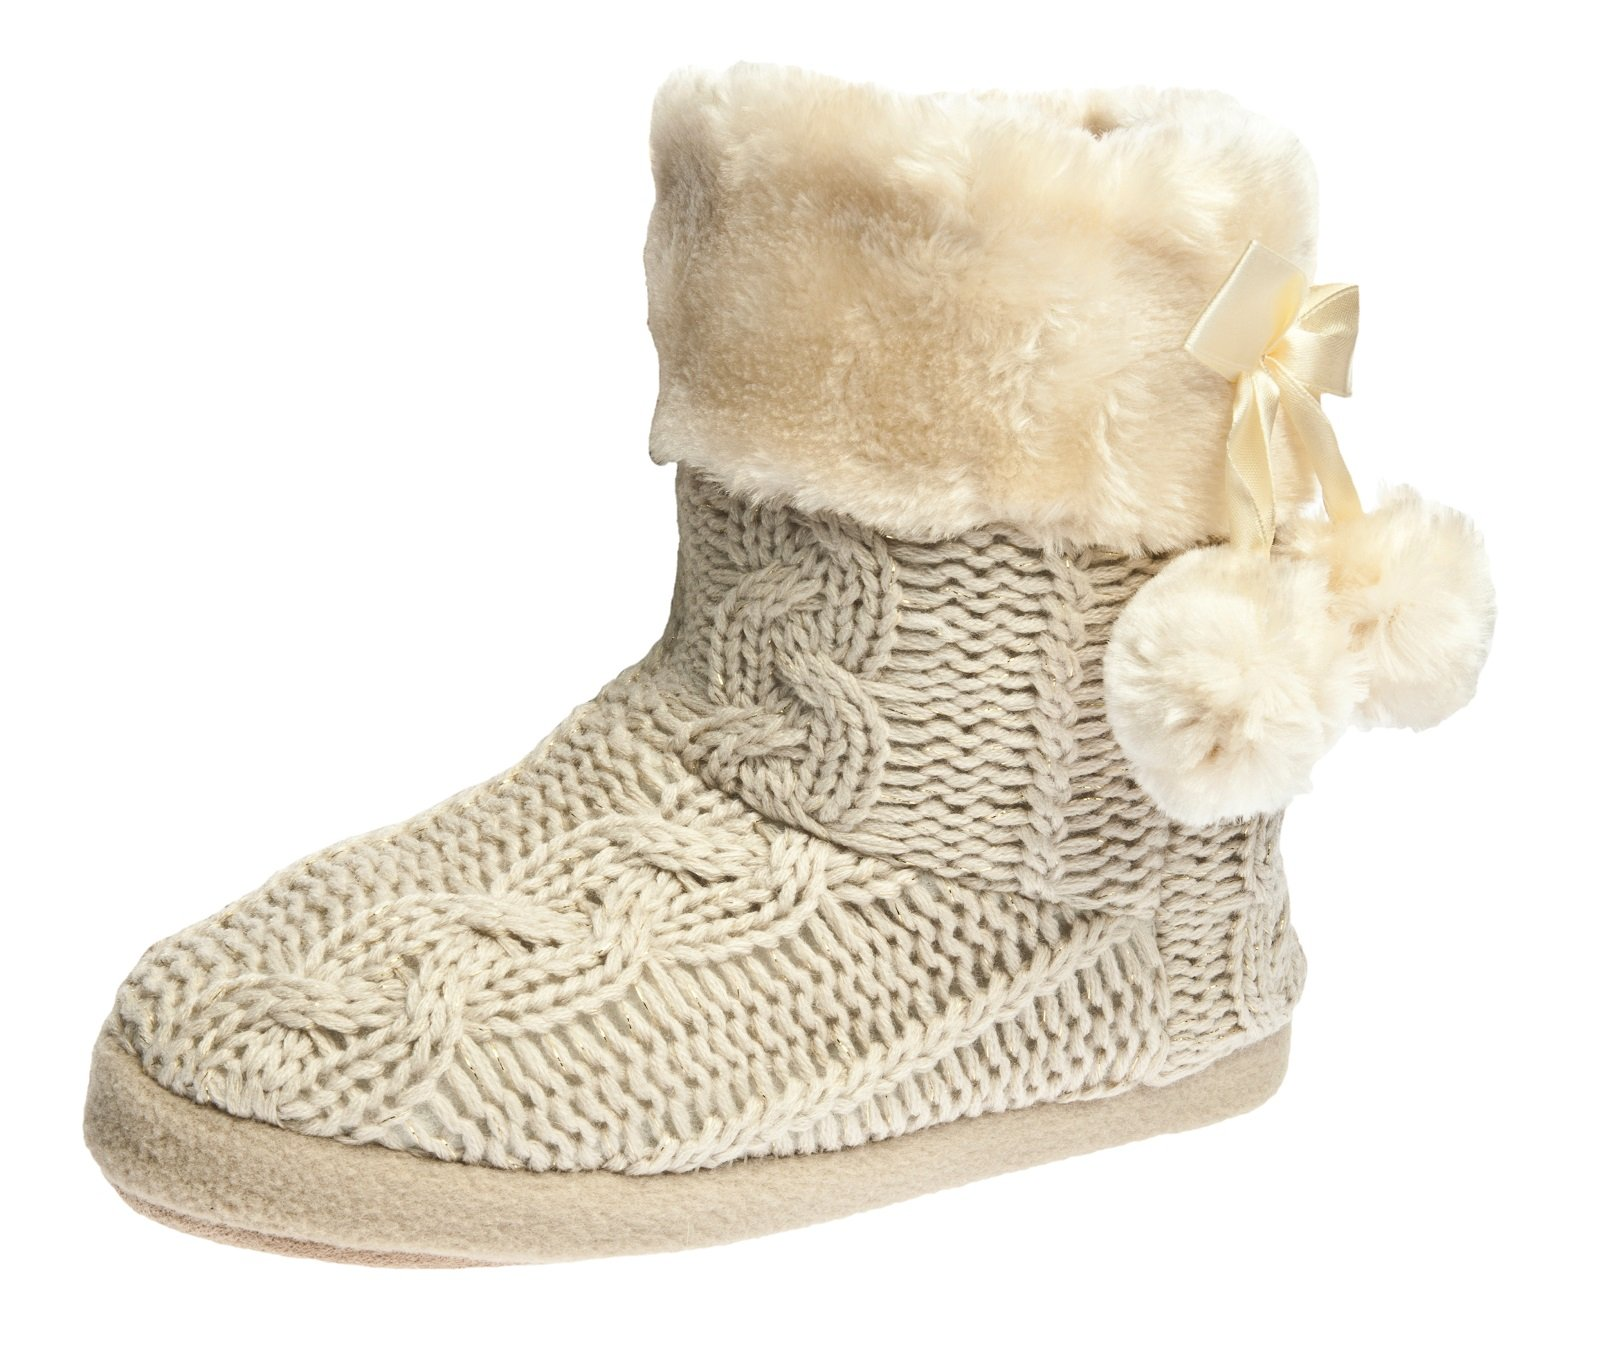 Airee Fairee Slippers Booties for Women Ladies Girls Slipper Boot Bootie Faux Fur Lined with Pom Poms (Medium US 7-8, Beige 2)